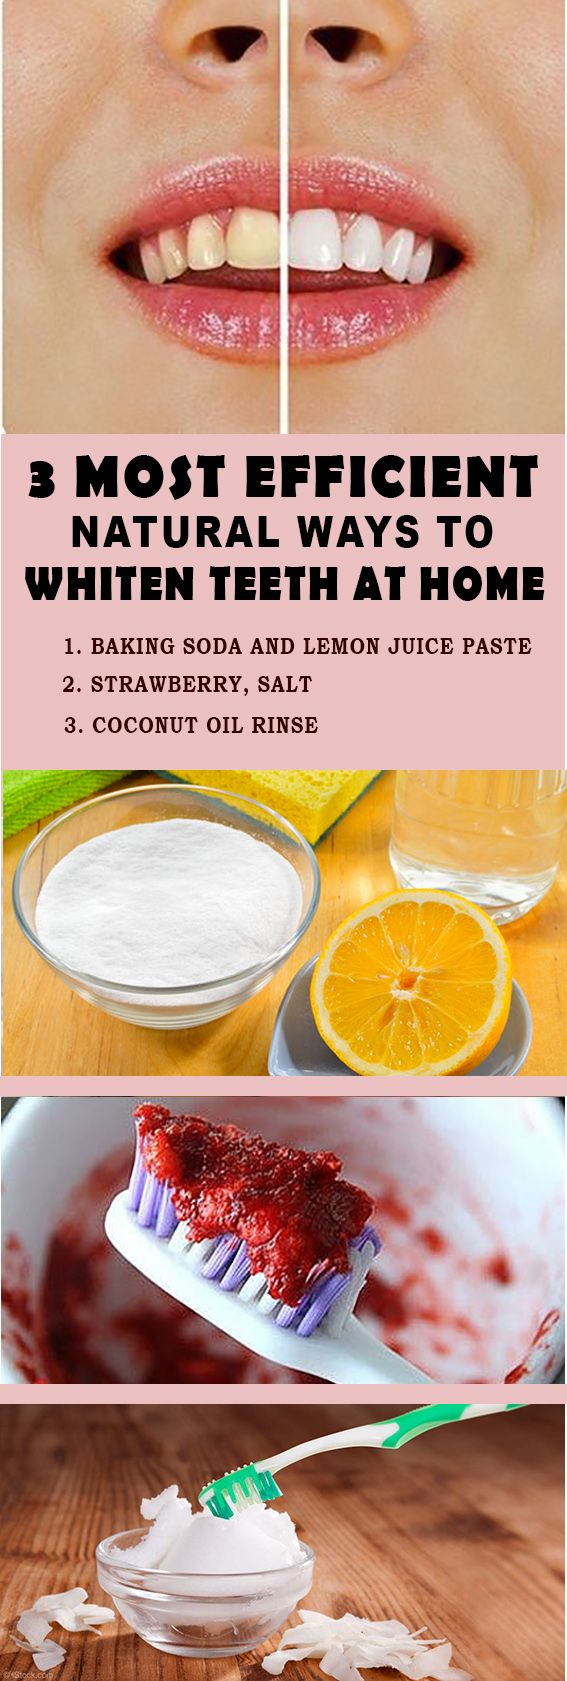 3 Most Efficient Natural Ways To Whiten Teeth at Home